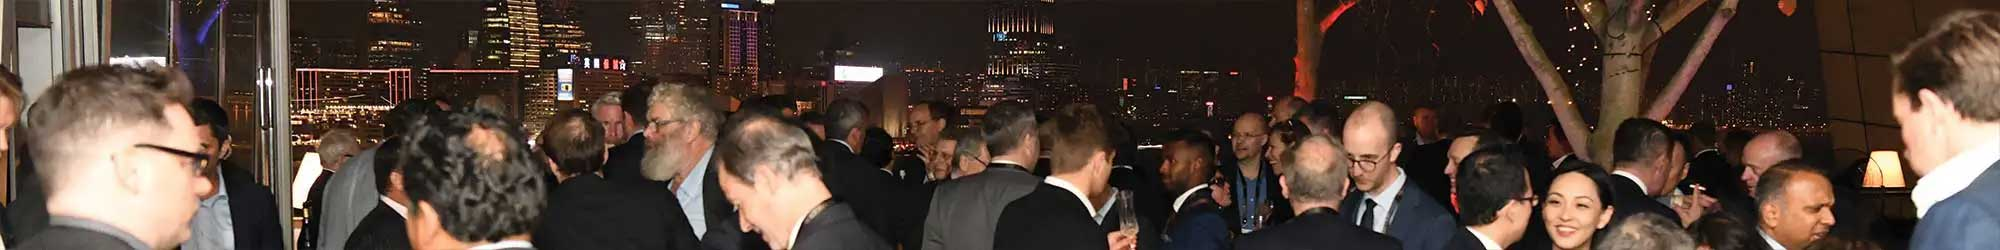 Hong Kong After Dark - Networking | Mines and Money Asia